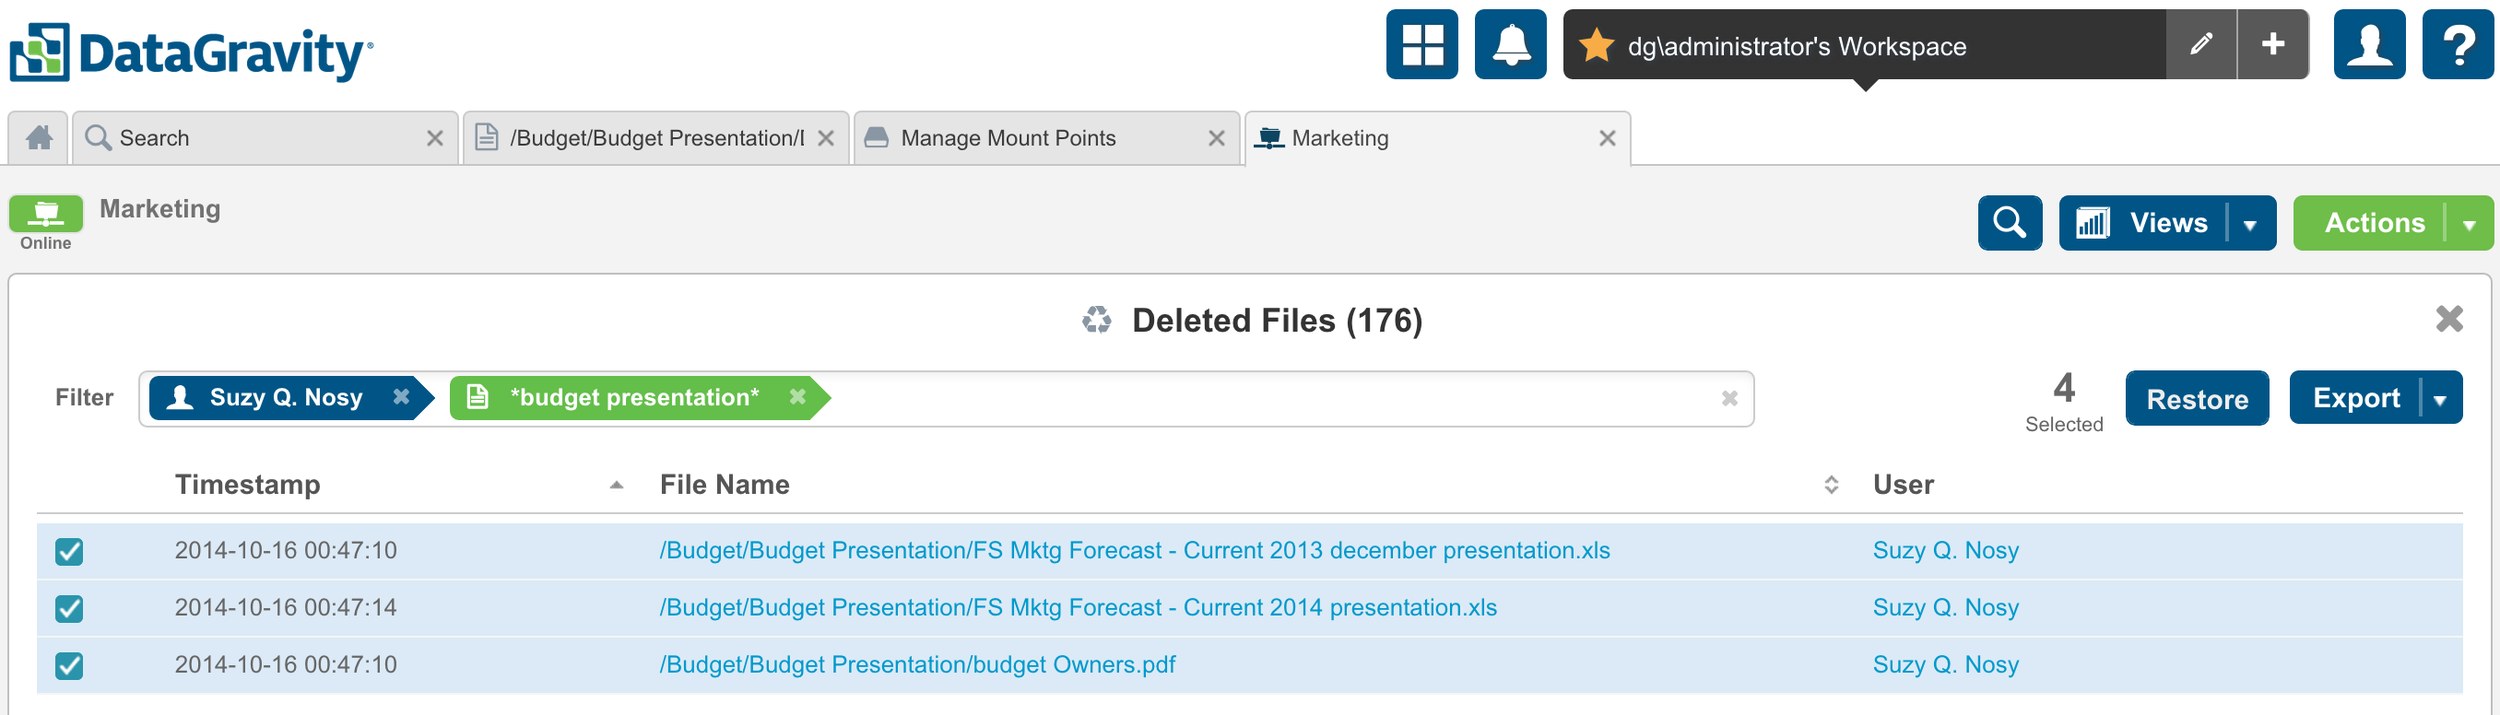 Find Items to Recover Quickly using Search & Filtering